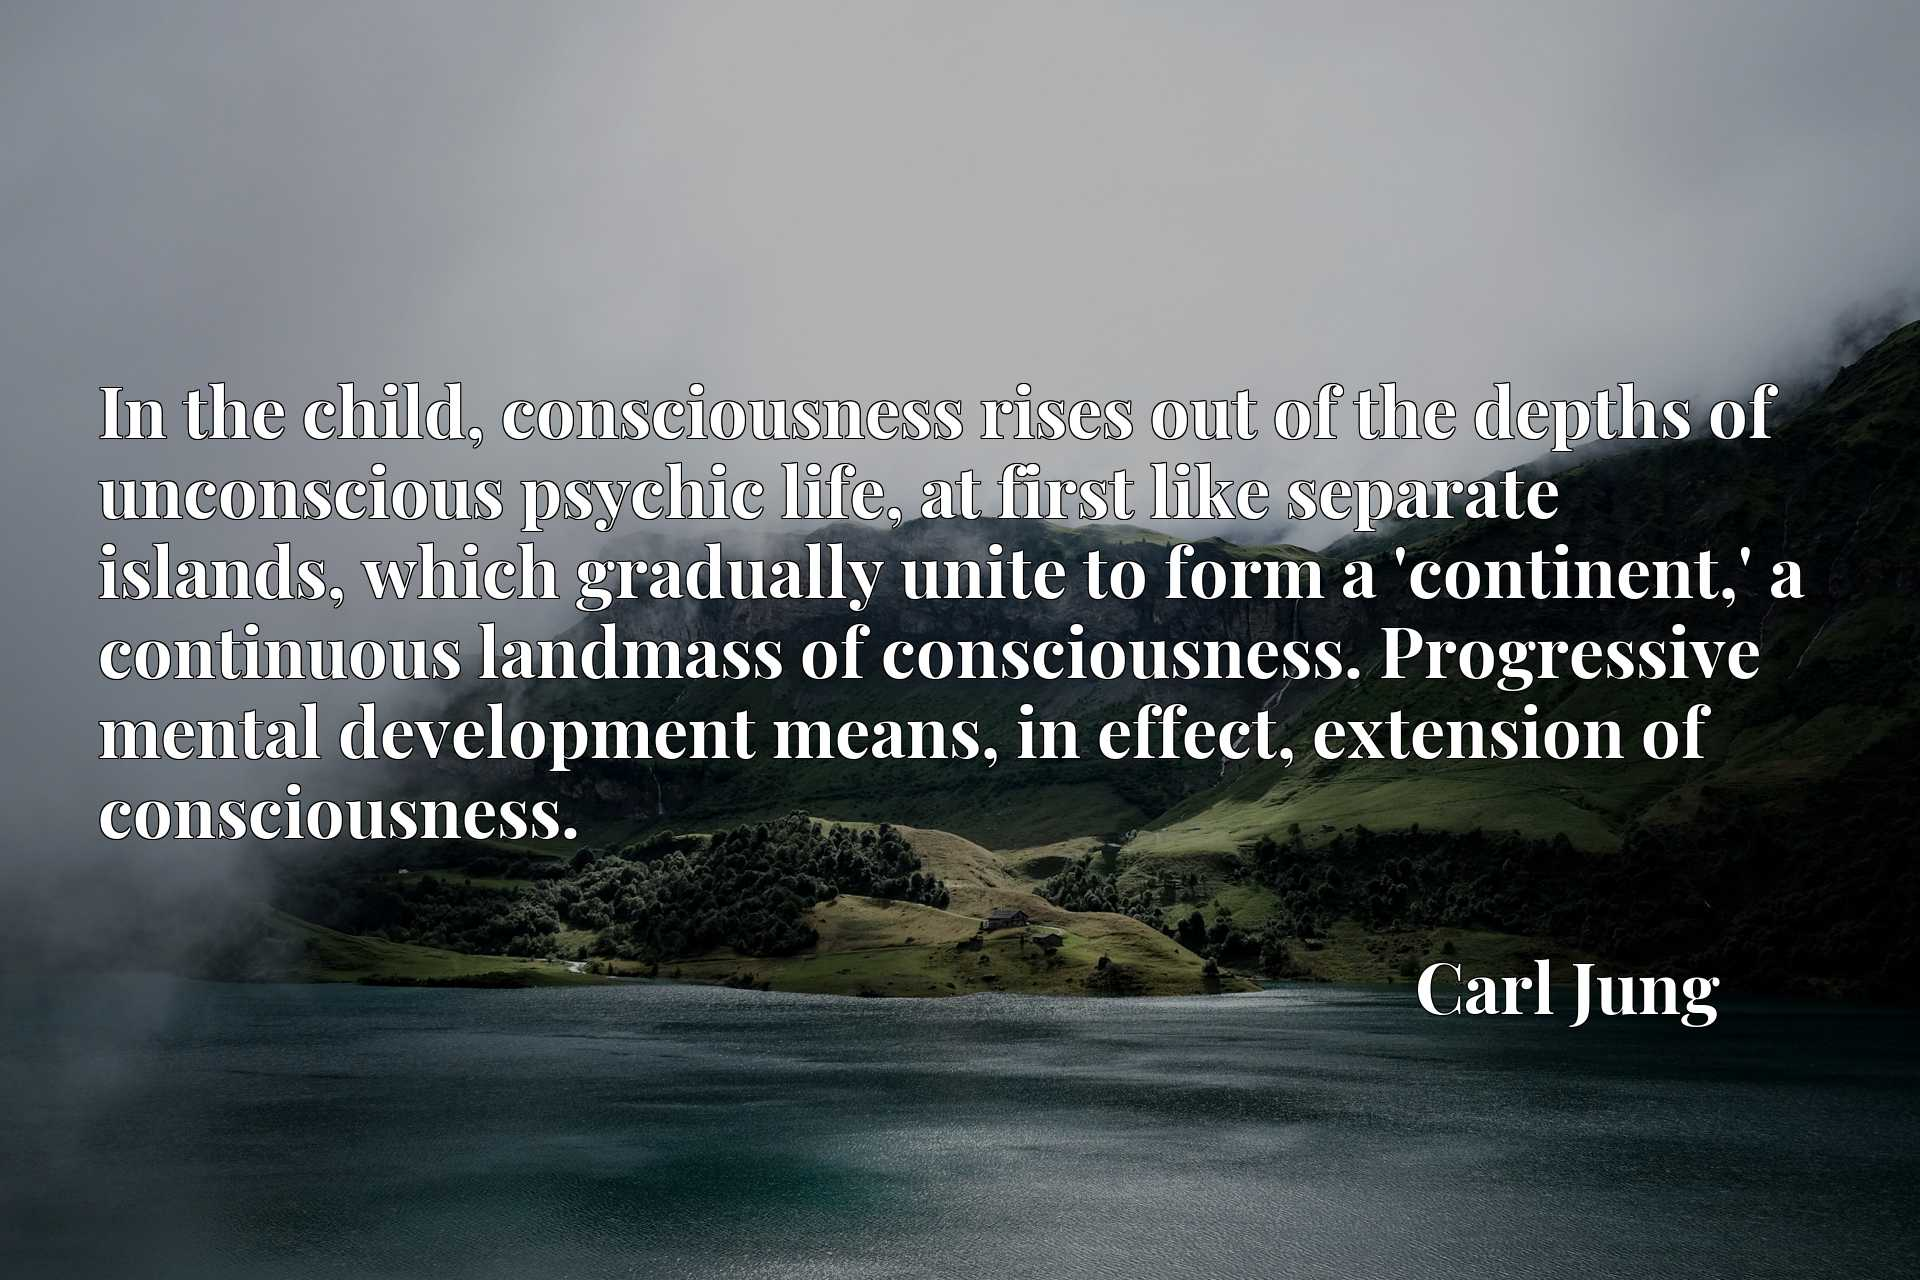 In the child, consciousness rises out of the depths of unconscious psychic life, at first like separate islands, which gradually unite to form a 'continent,' a continuous landmass of consciousness. Progressive mental development means, in effect, extension of consciousness.